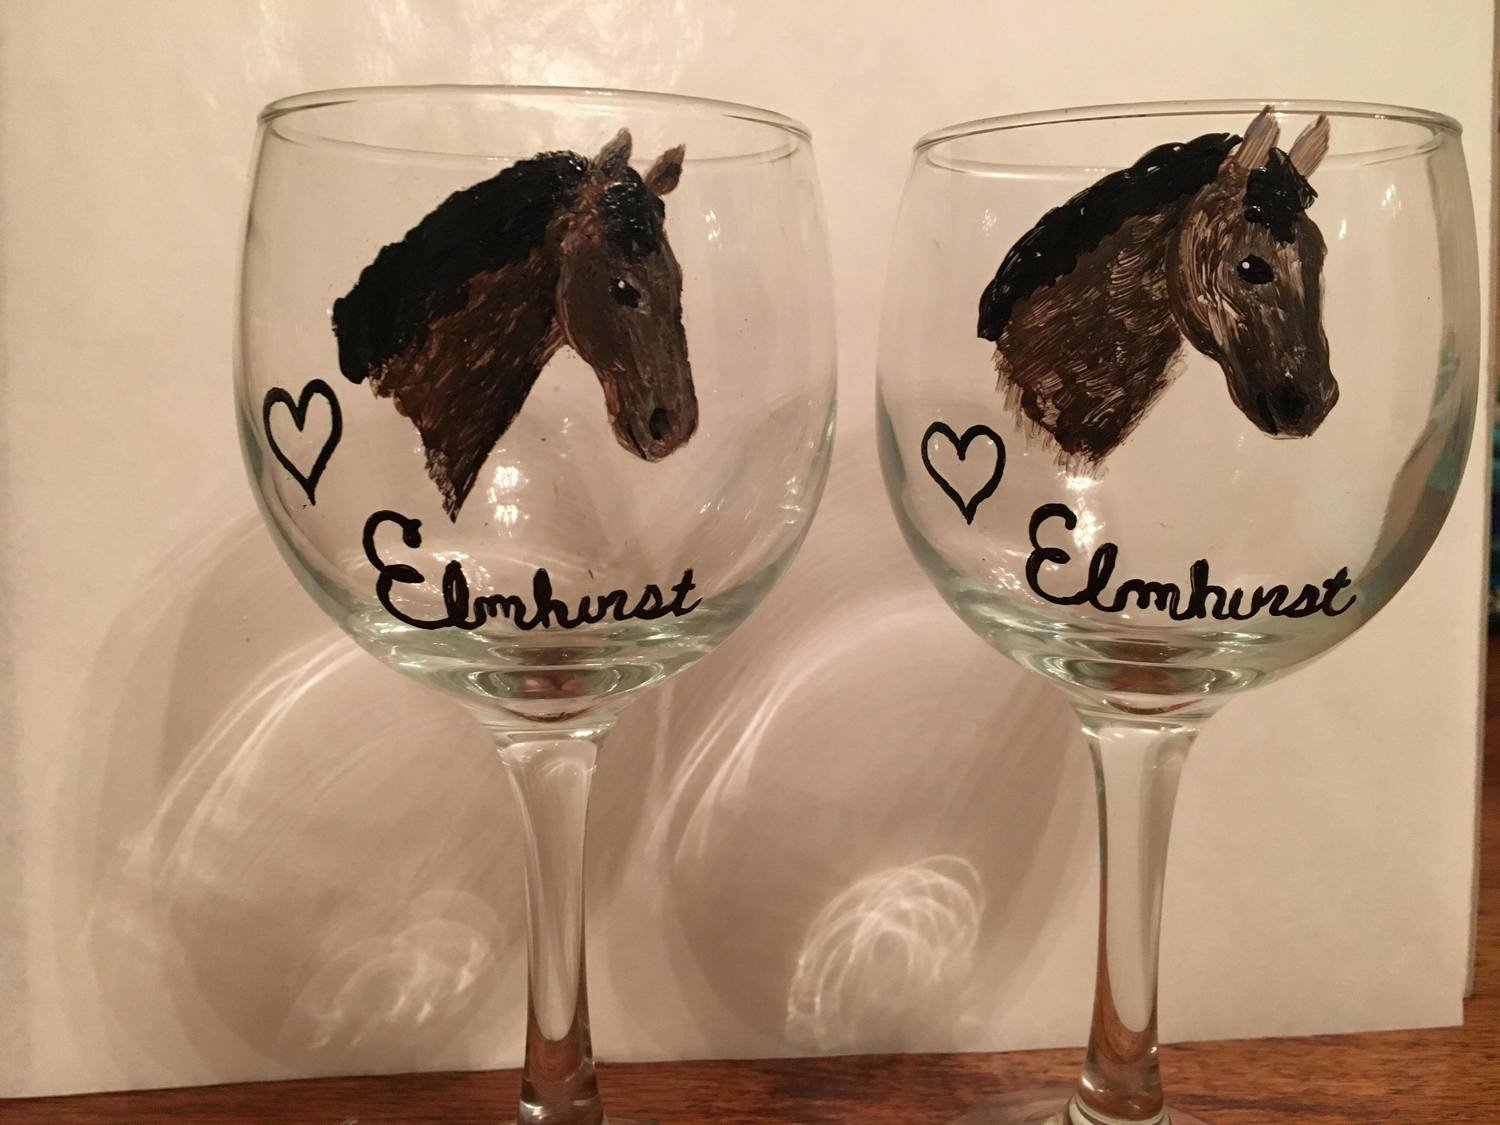 Elmhurst Wine Glass With Name